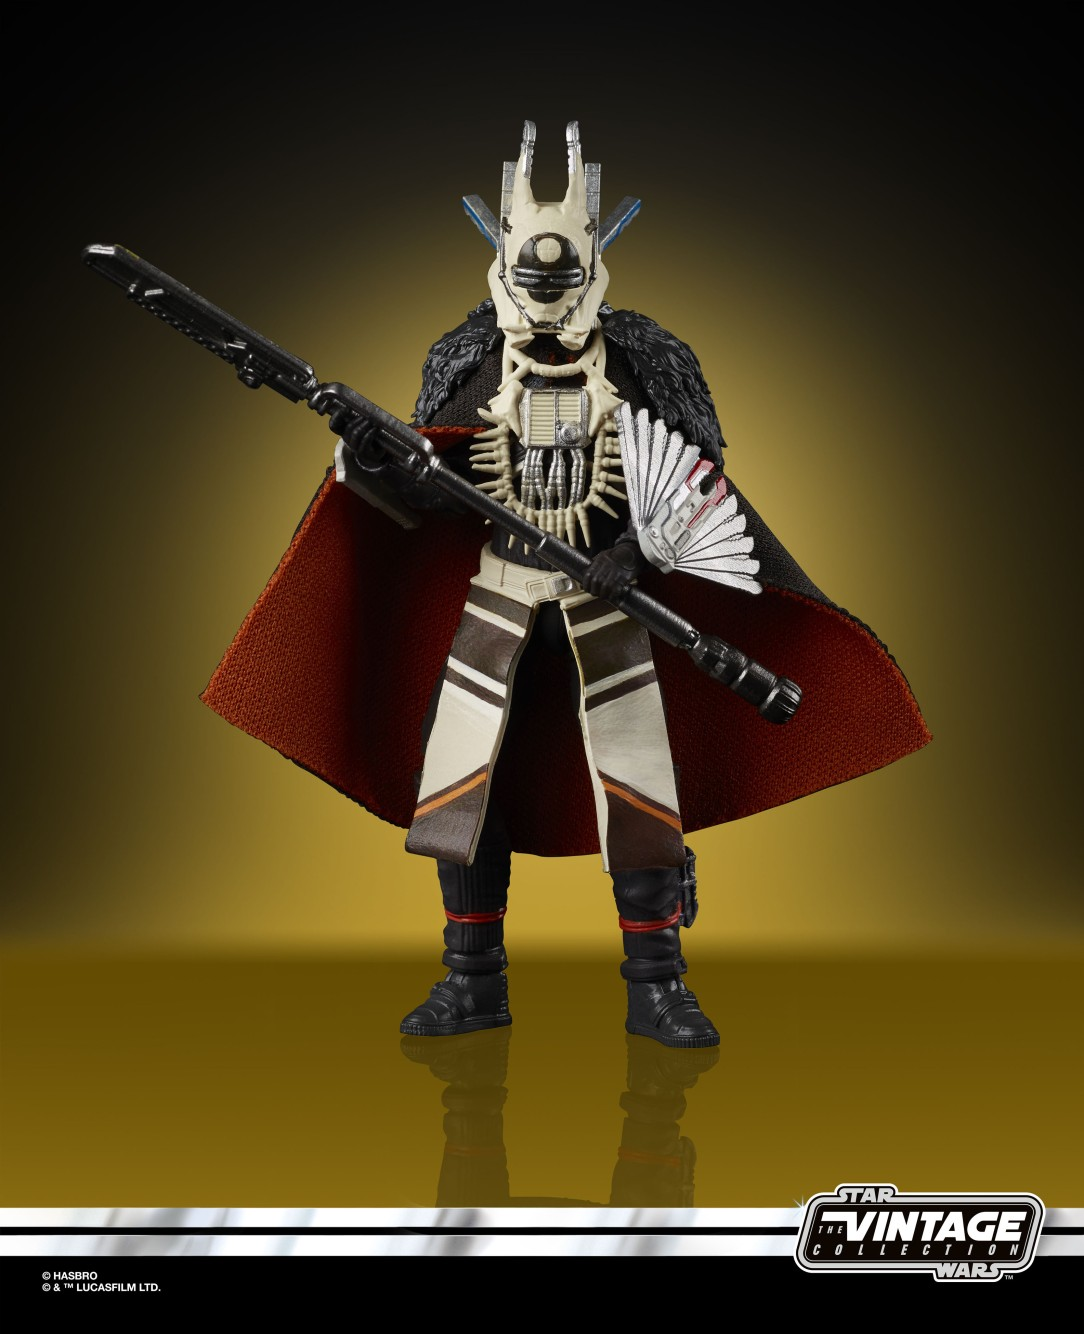 STAR-WARS-THE-VINTAGE-COLLECTION-ENFYS-NEST-1